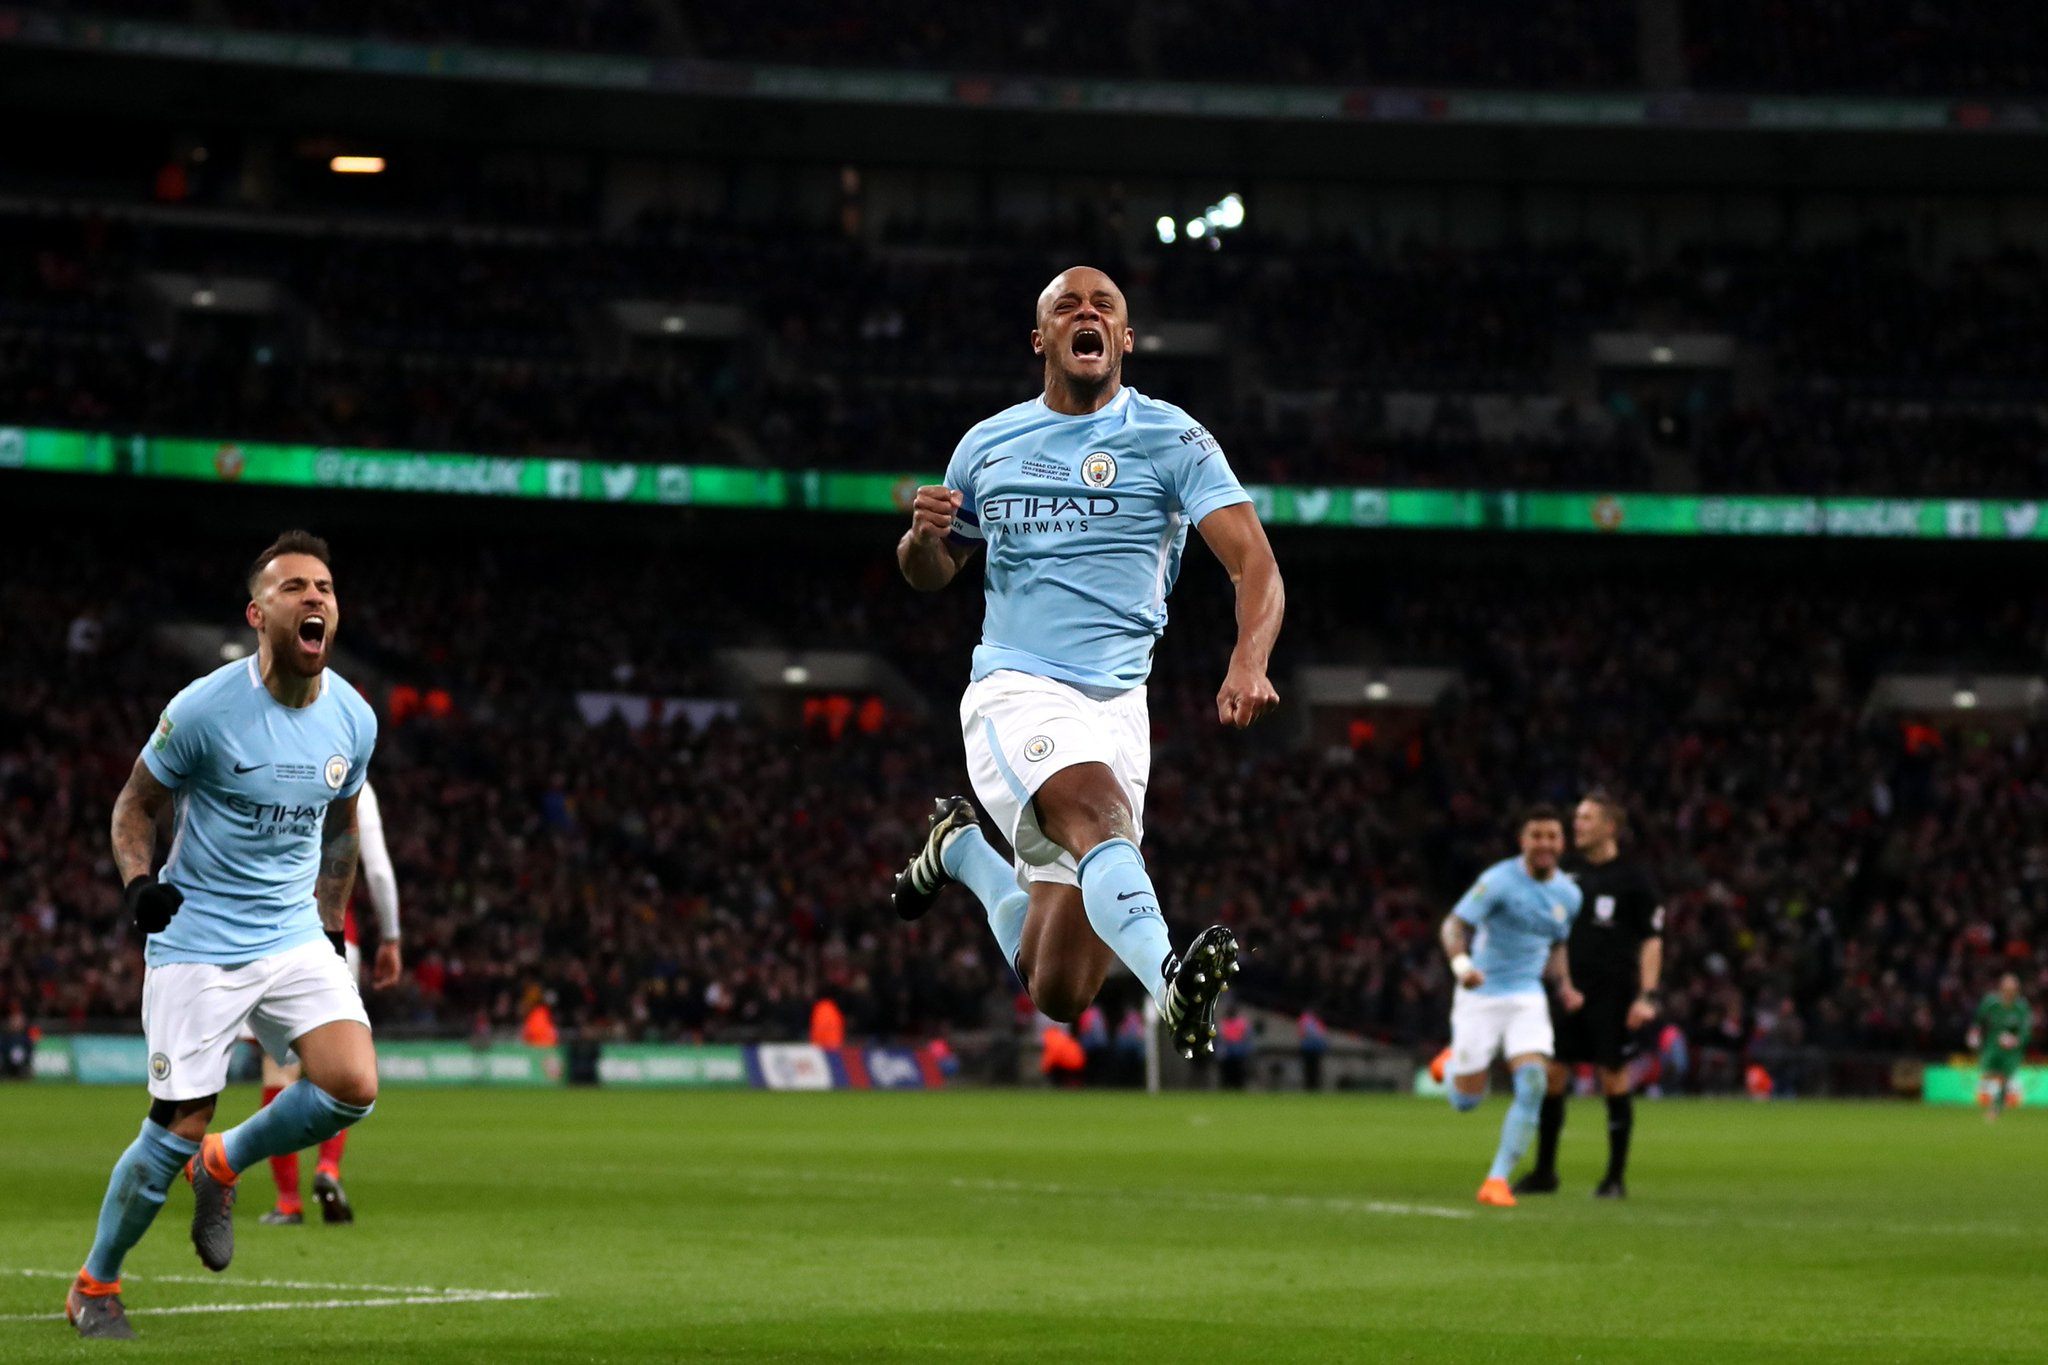 Video: Arsenal vs Man City 0-3 Highlights - Carabao Cup - 25 February 2018